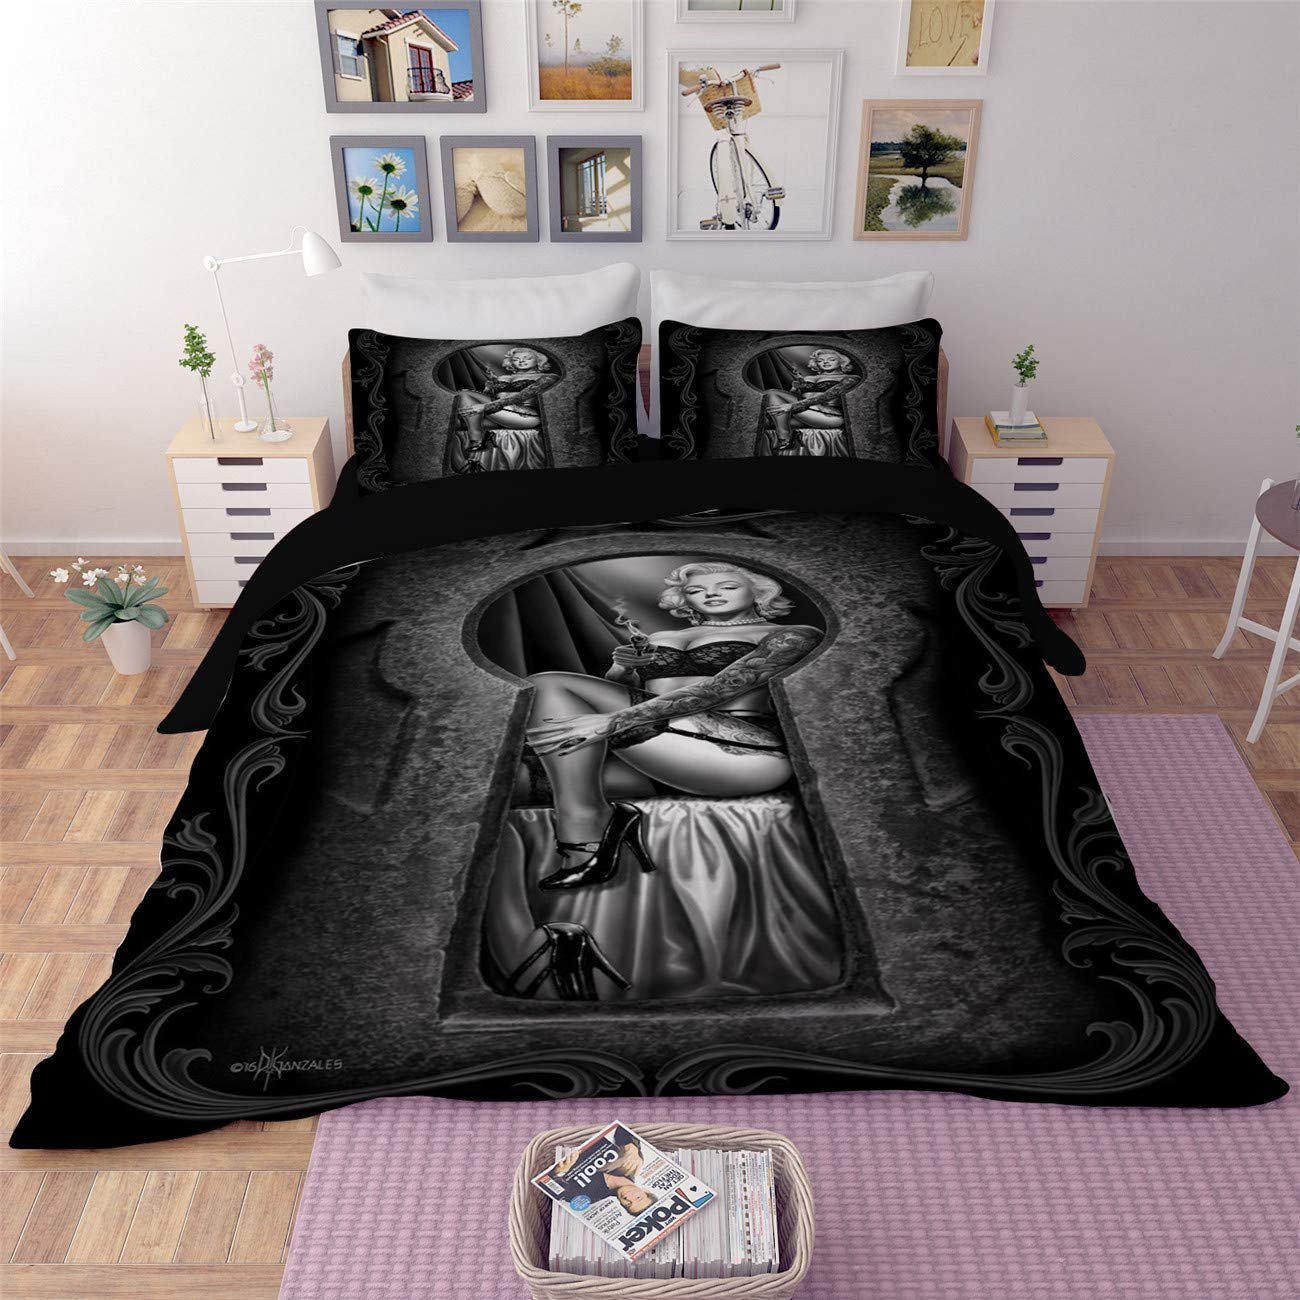 Marilyn Monroe Bedroom Set Lovely Amtan 3d Marilyn Monroe Duvet Cover Set Y Marilyn Monroe Smile Bedding Set Black Skull Print Bed Set 3pc 1duvet Cover 2pillowcase King Queen Full